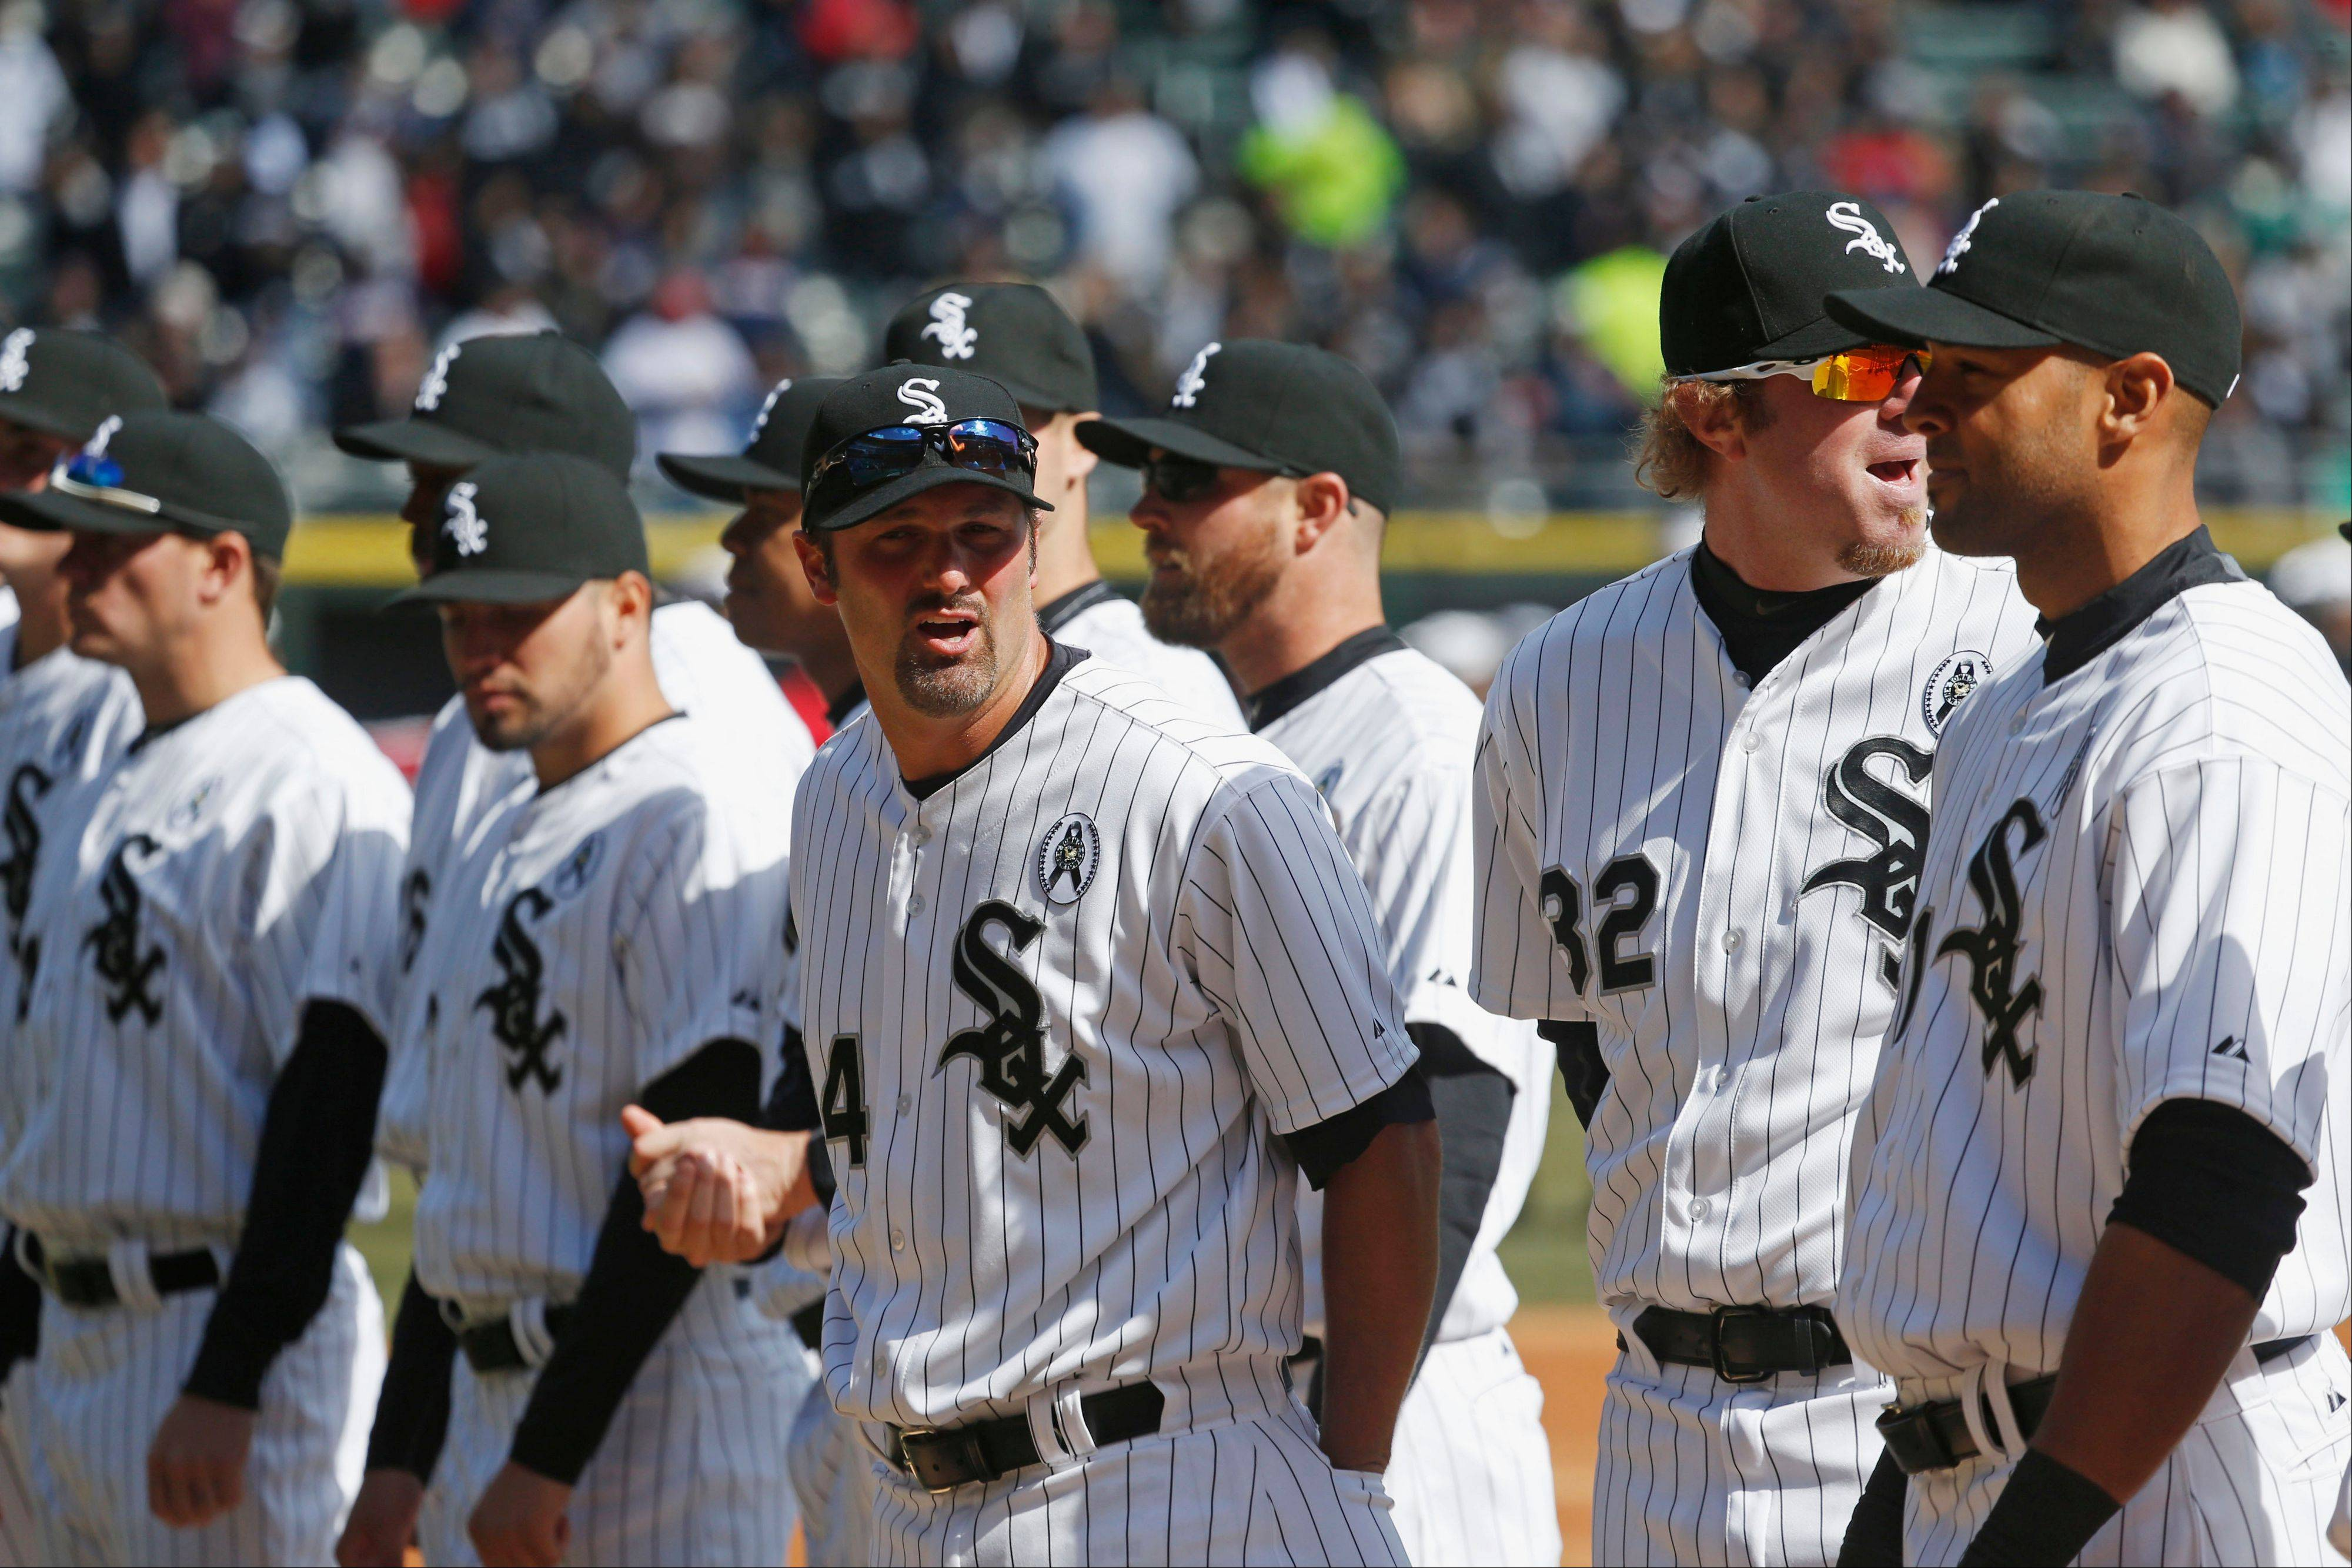 Paul Konerko, center, is hitting .253 with 7 home runs and 30 RBI.